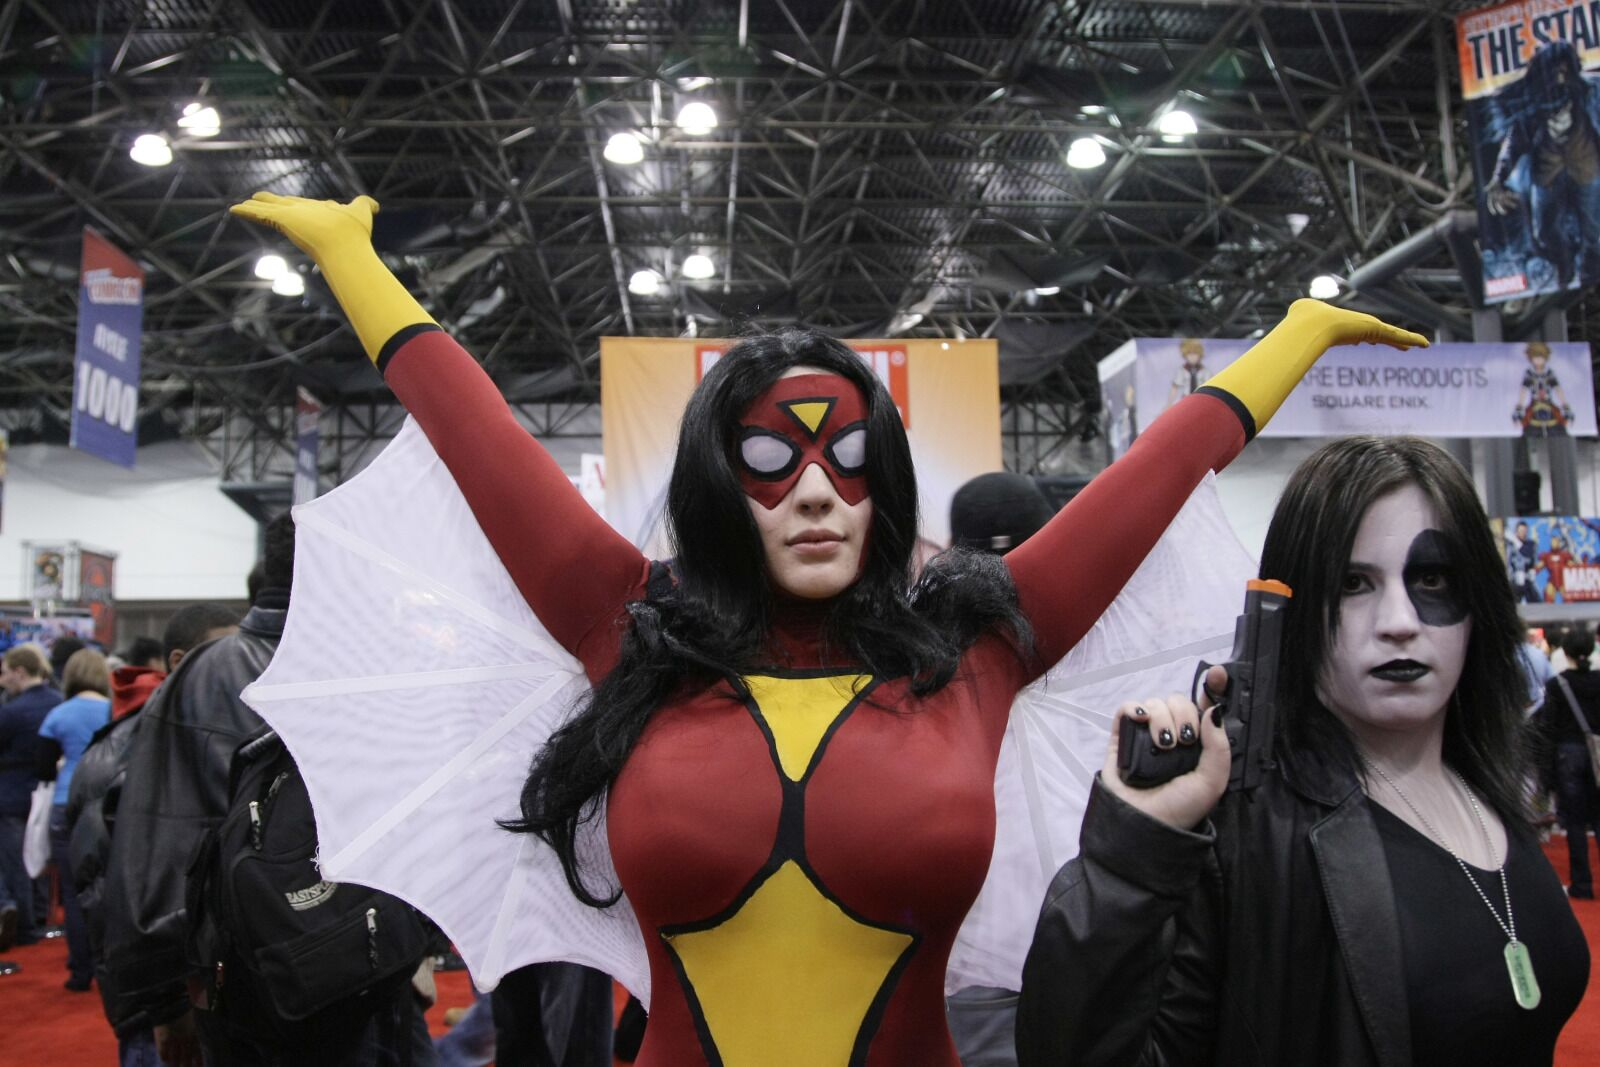 Rumor: A Spider-Woman film is in development at Sony